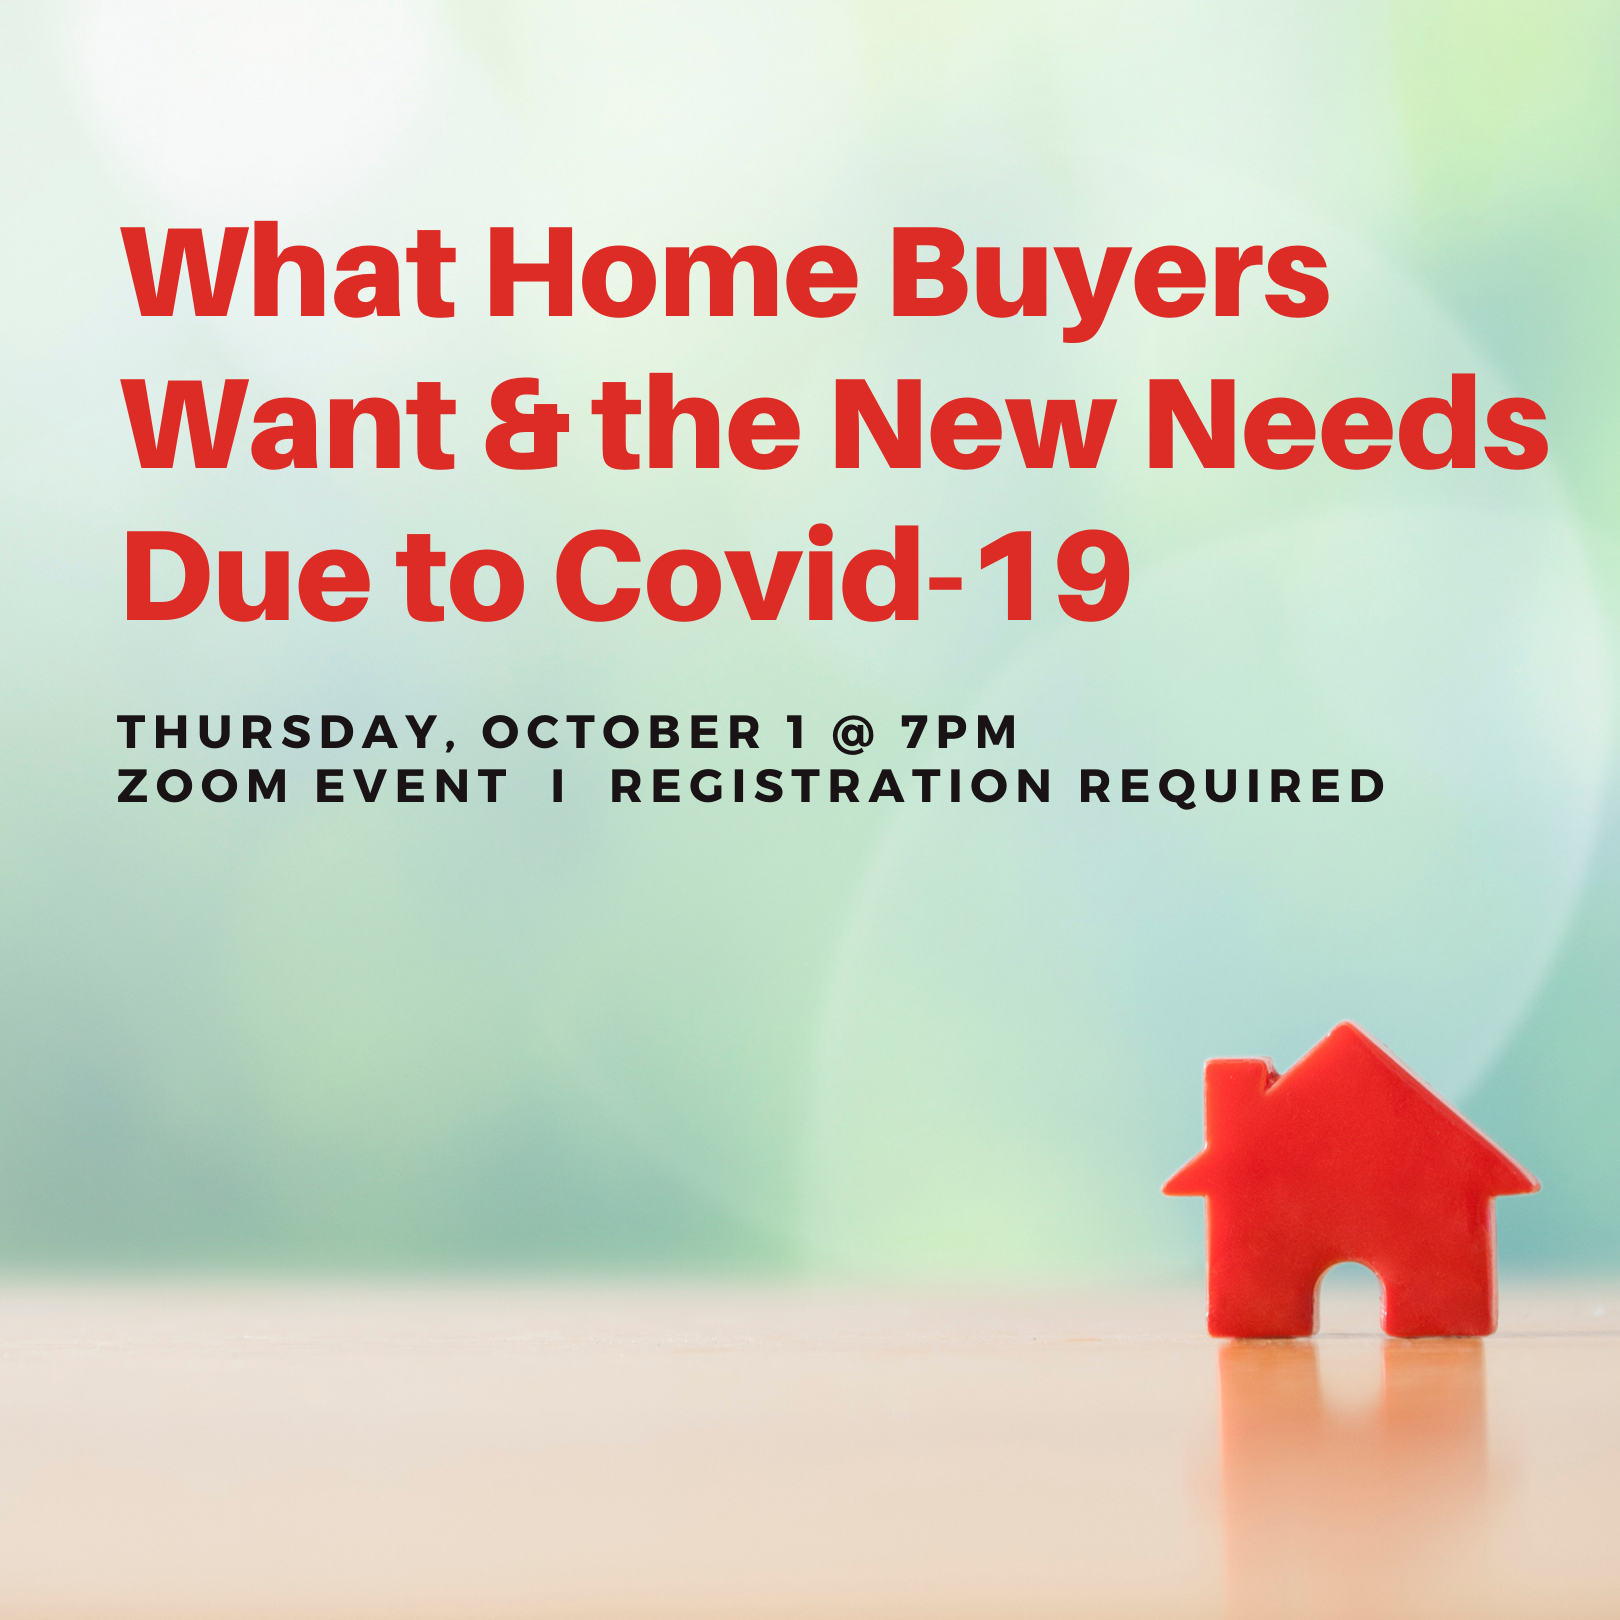 What Home Buyers Want & the New Needs Due to Covid-19